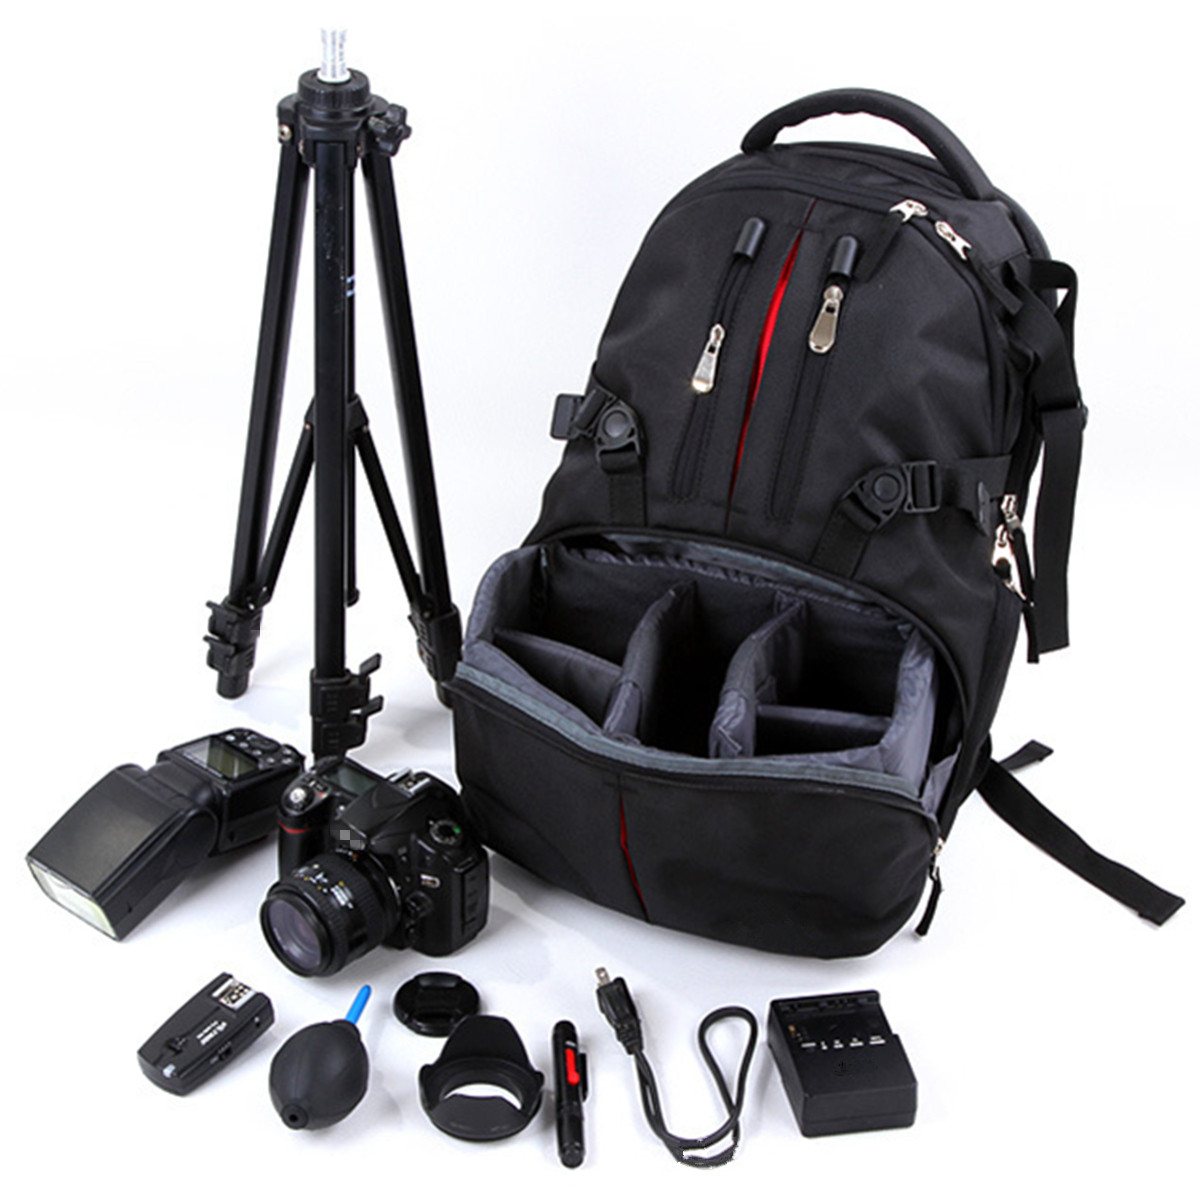 Waterproof DSLR Camera Backpack Case For Nikon For Canon Photo Bag for Camera &Outdoor Travel photographs Package Rucksack BagWaterproof DSLR Camera Backpack Case For Nikon For Canon Photo Bag for Camera &Outdoor Travel photographs Package Rucksack Bag